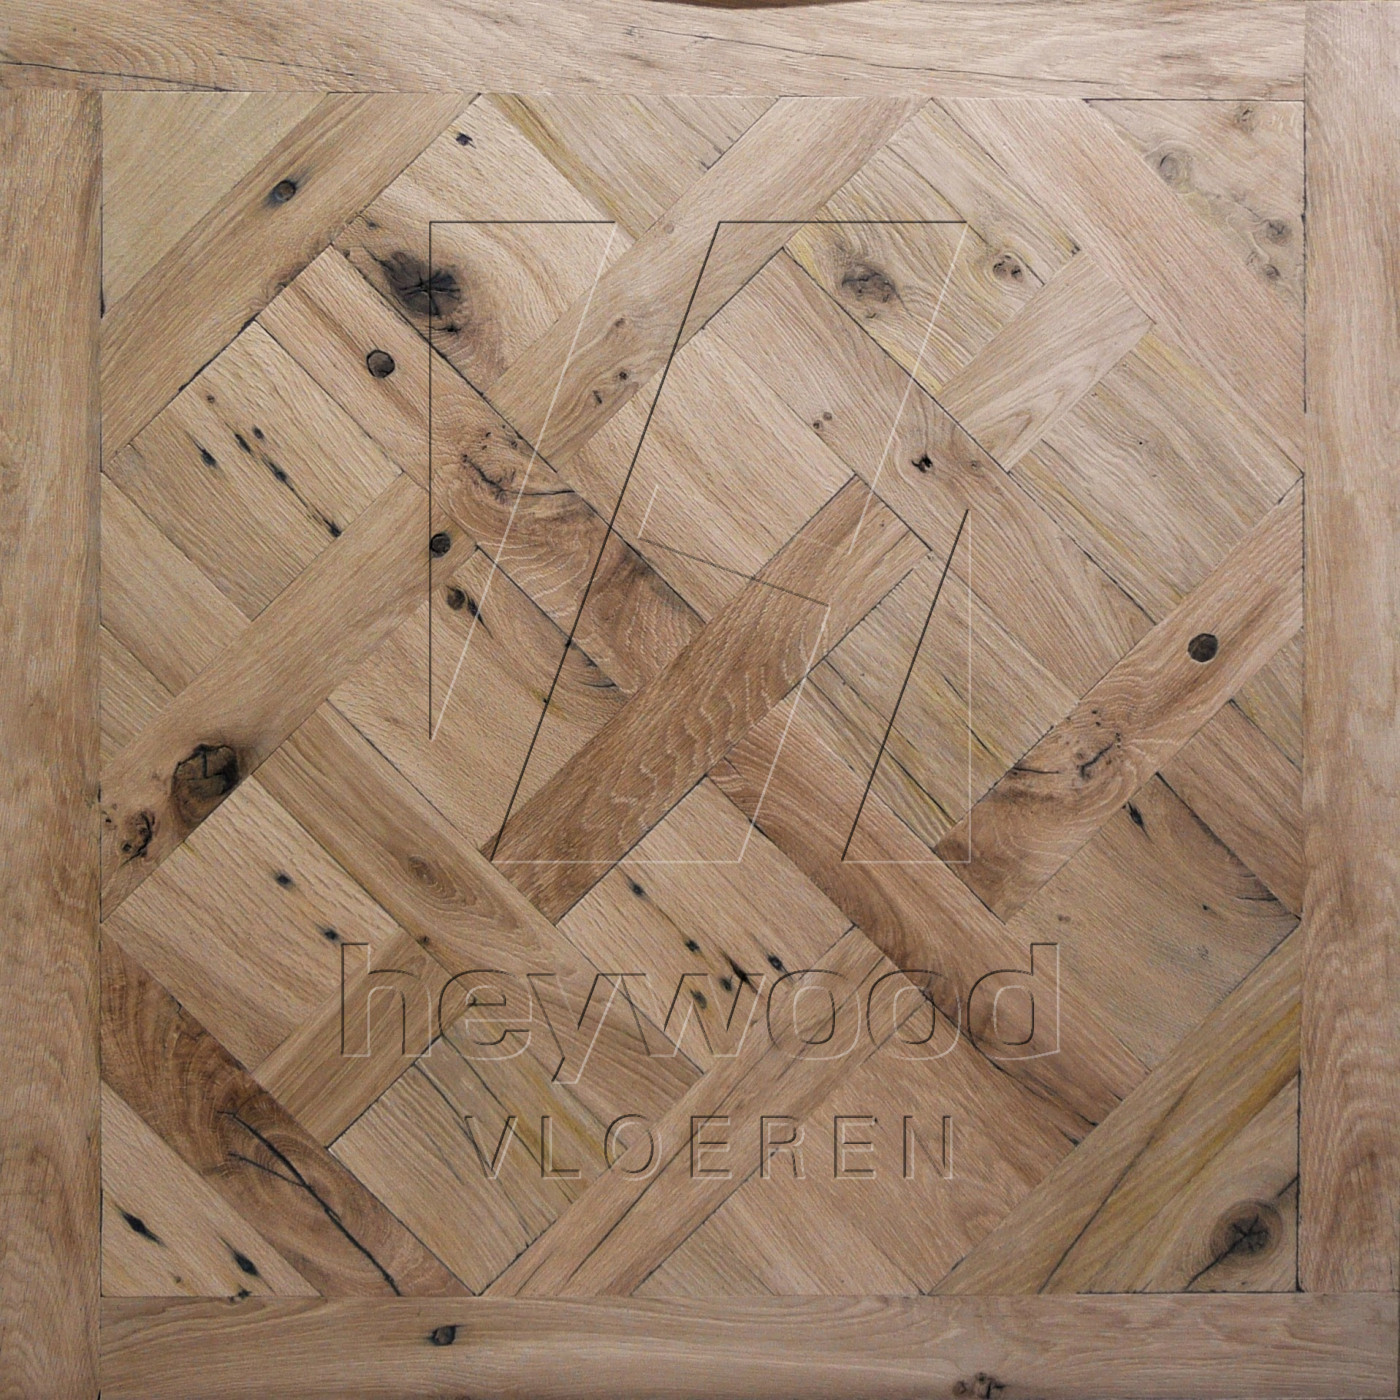 Reclaimed Versailles 'Stellenbosch' (unoiled) in Pattern & Panels (Outsides / Insides) of Old Reclaimed Wood